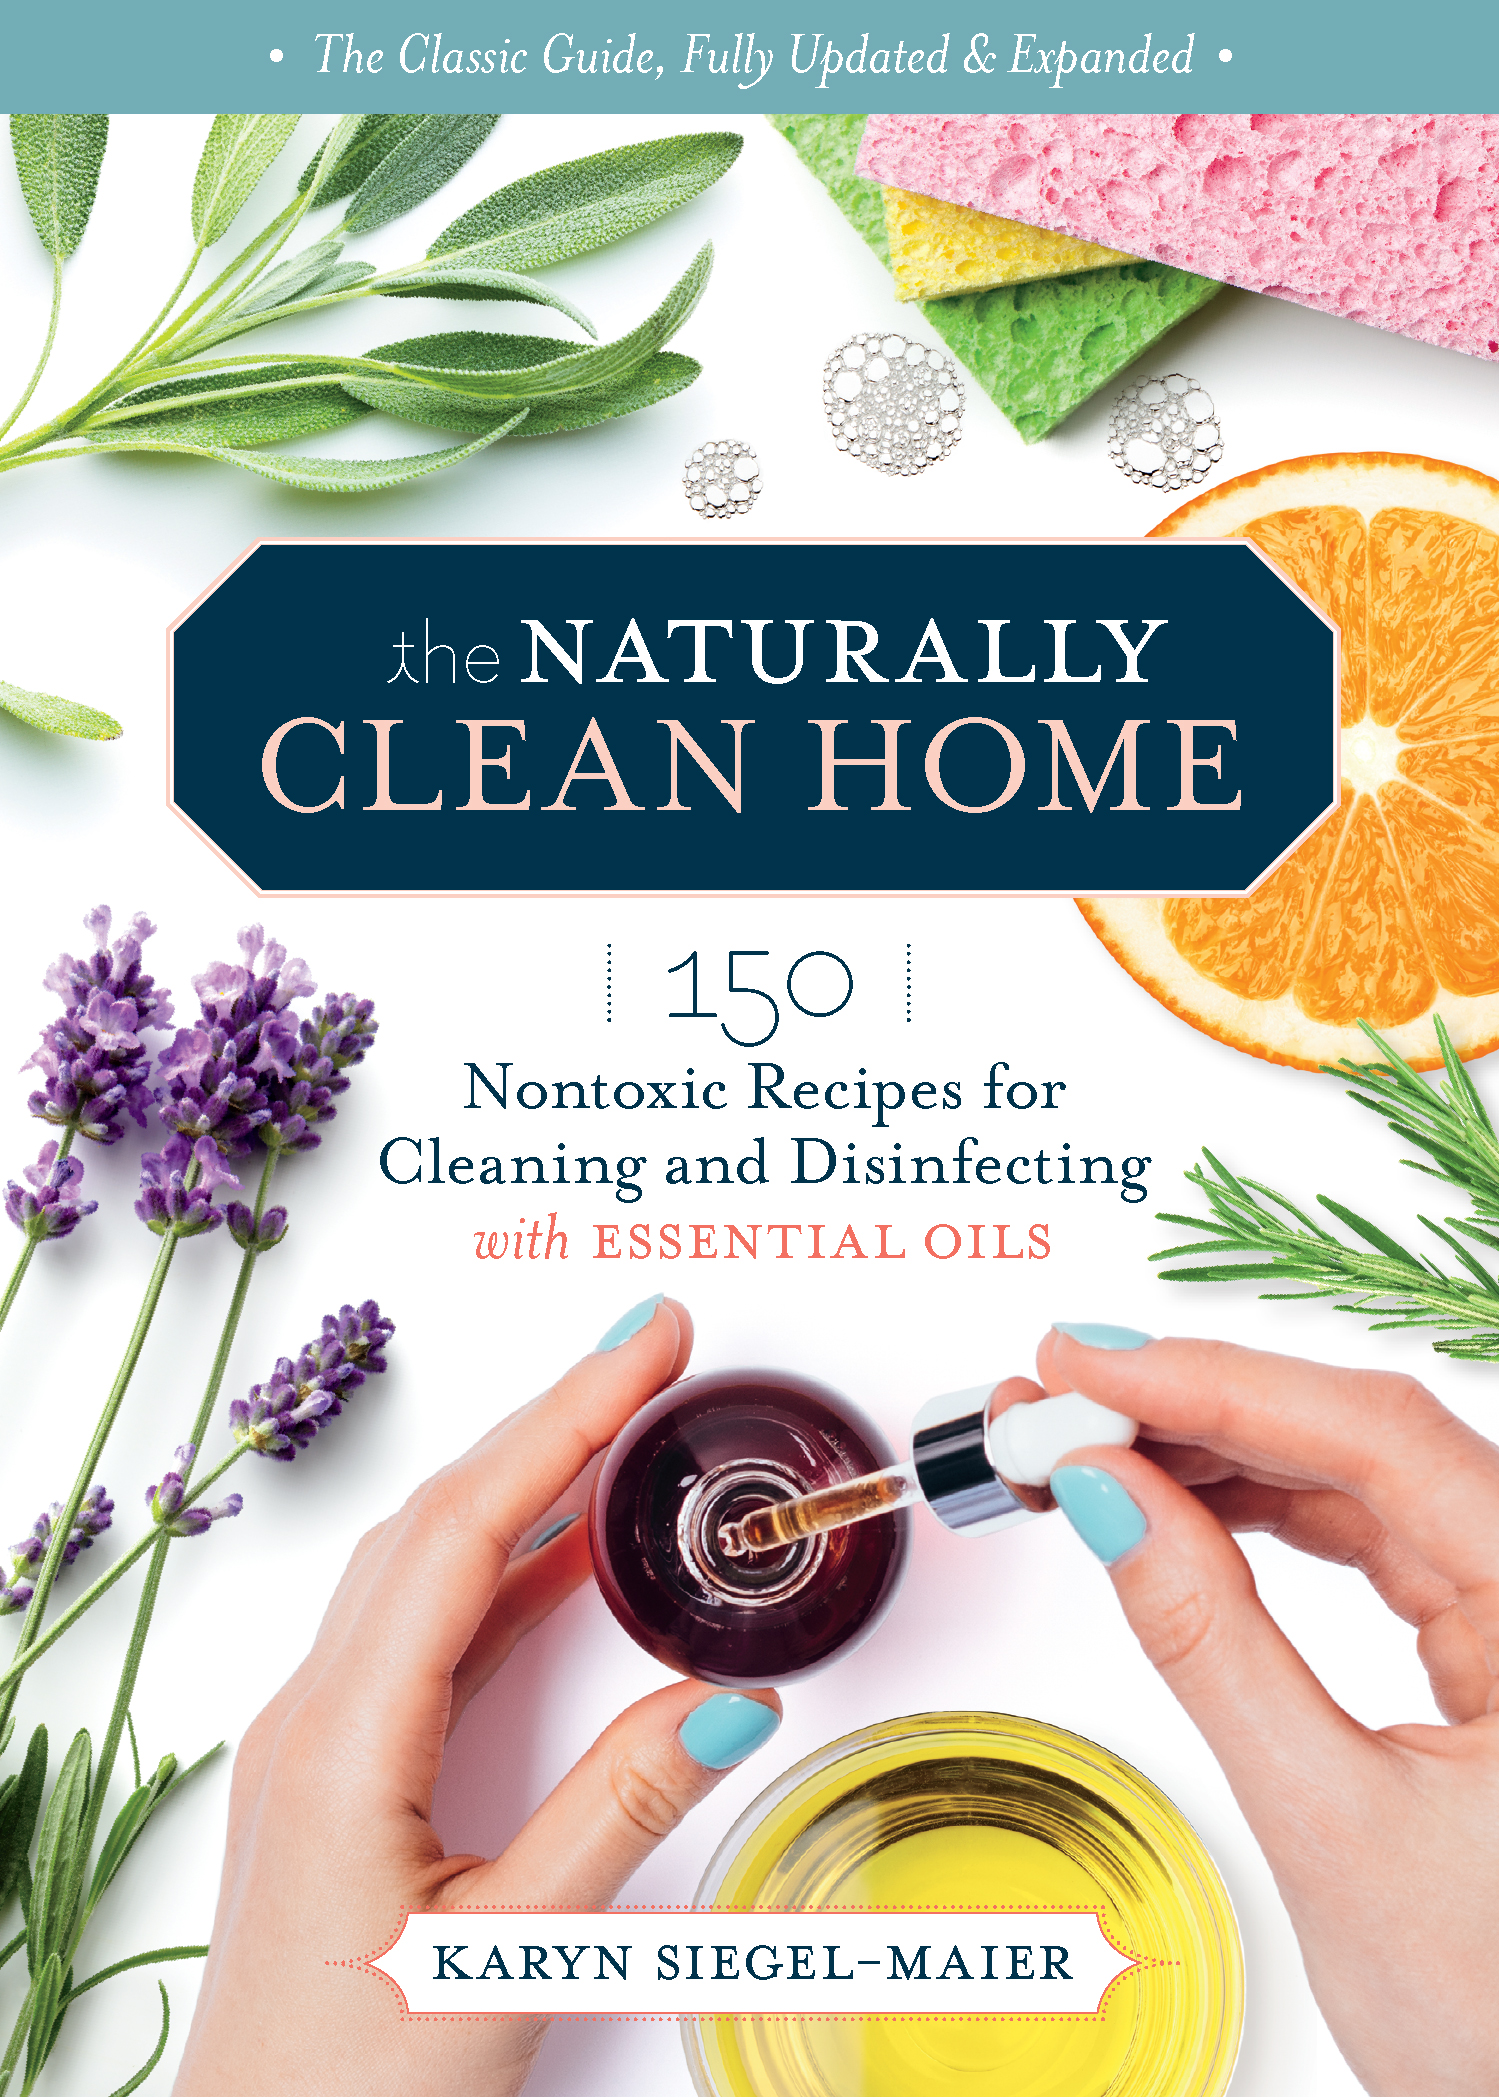 The Naturally Clean Home, 3rd Edition 150 Nontoxic Recipes for Cleaning and Disinfecting with Essential Oils - Karyn Siegel-Maier